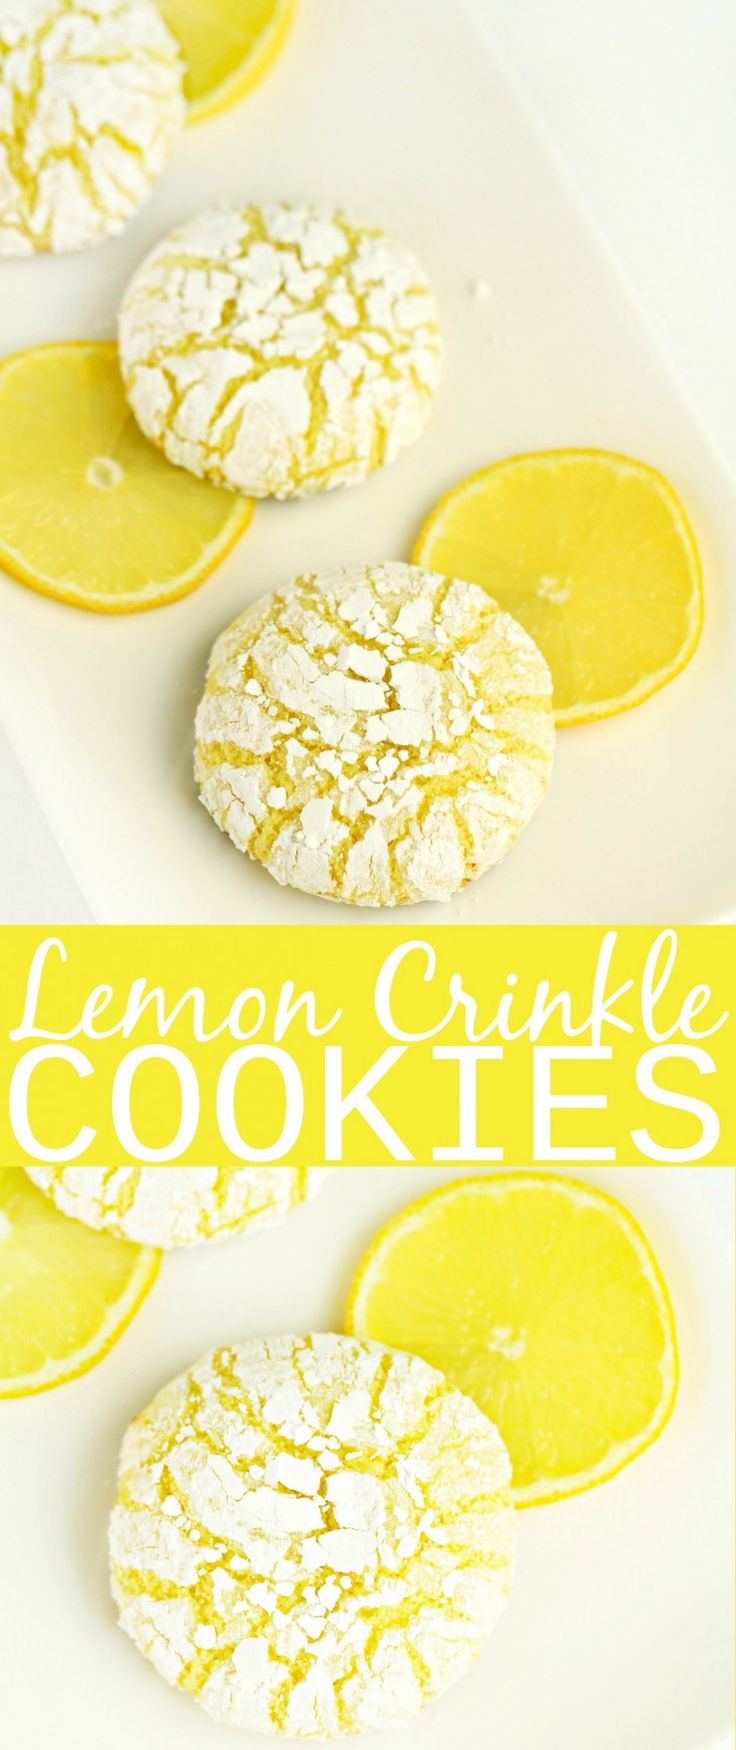 Lemon Crinkle Cookies recipe- Bursting with lemon and bites of sunshine in everybite.